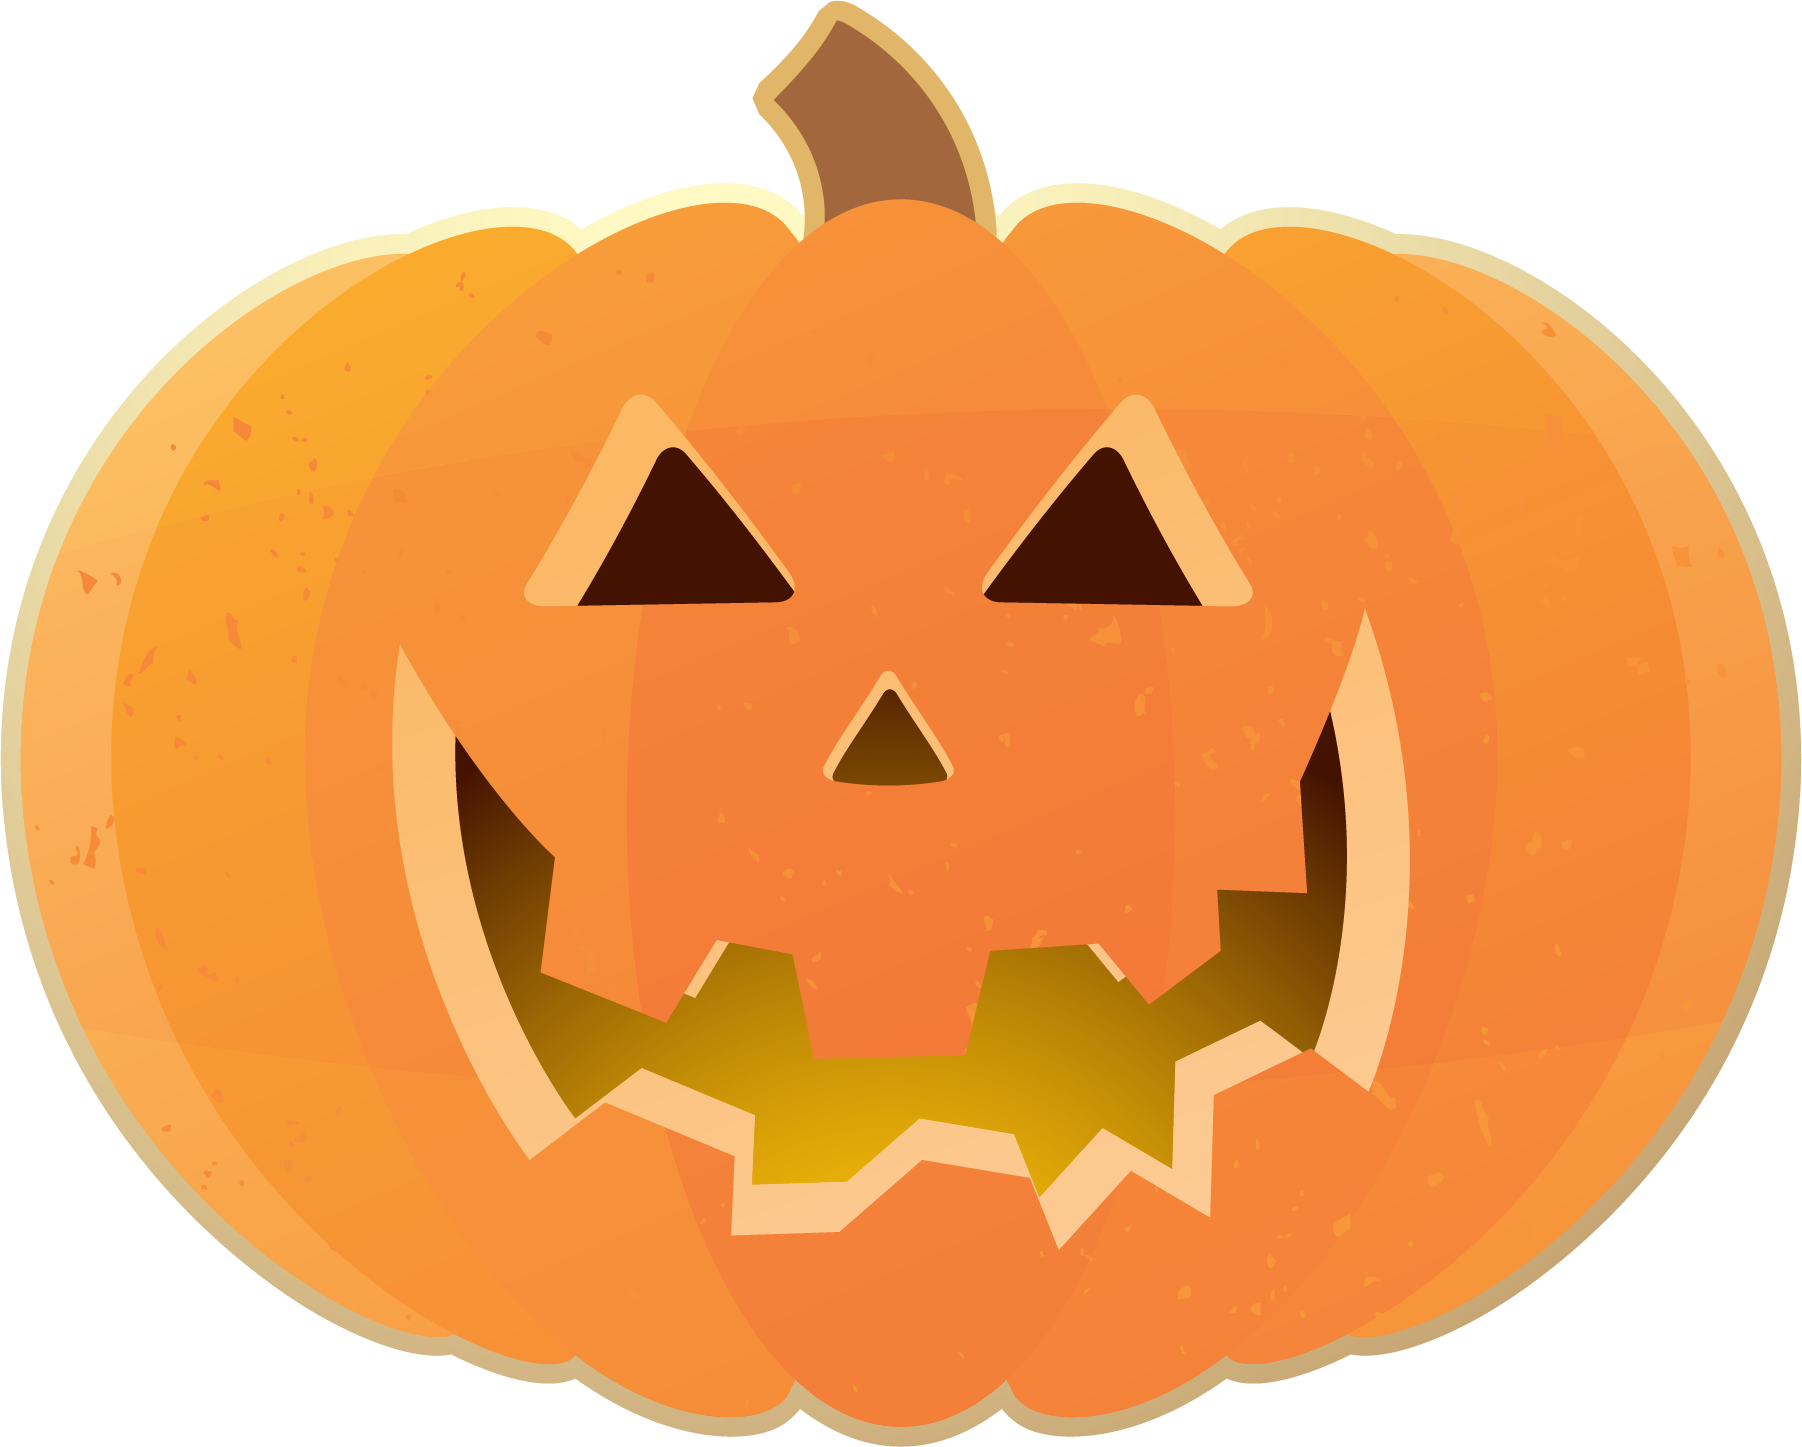 1802x1447 Squash clipart cute halloween pumpkin